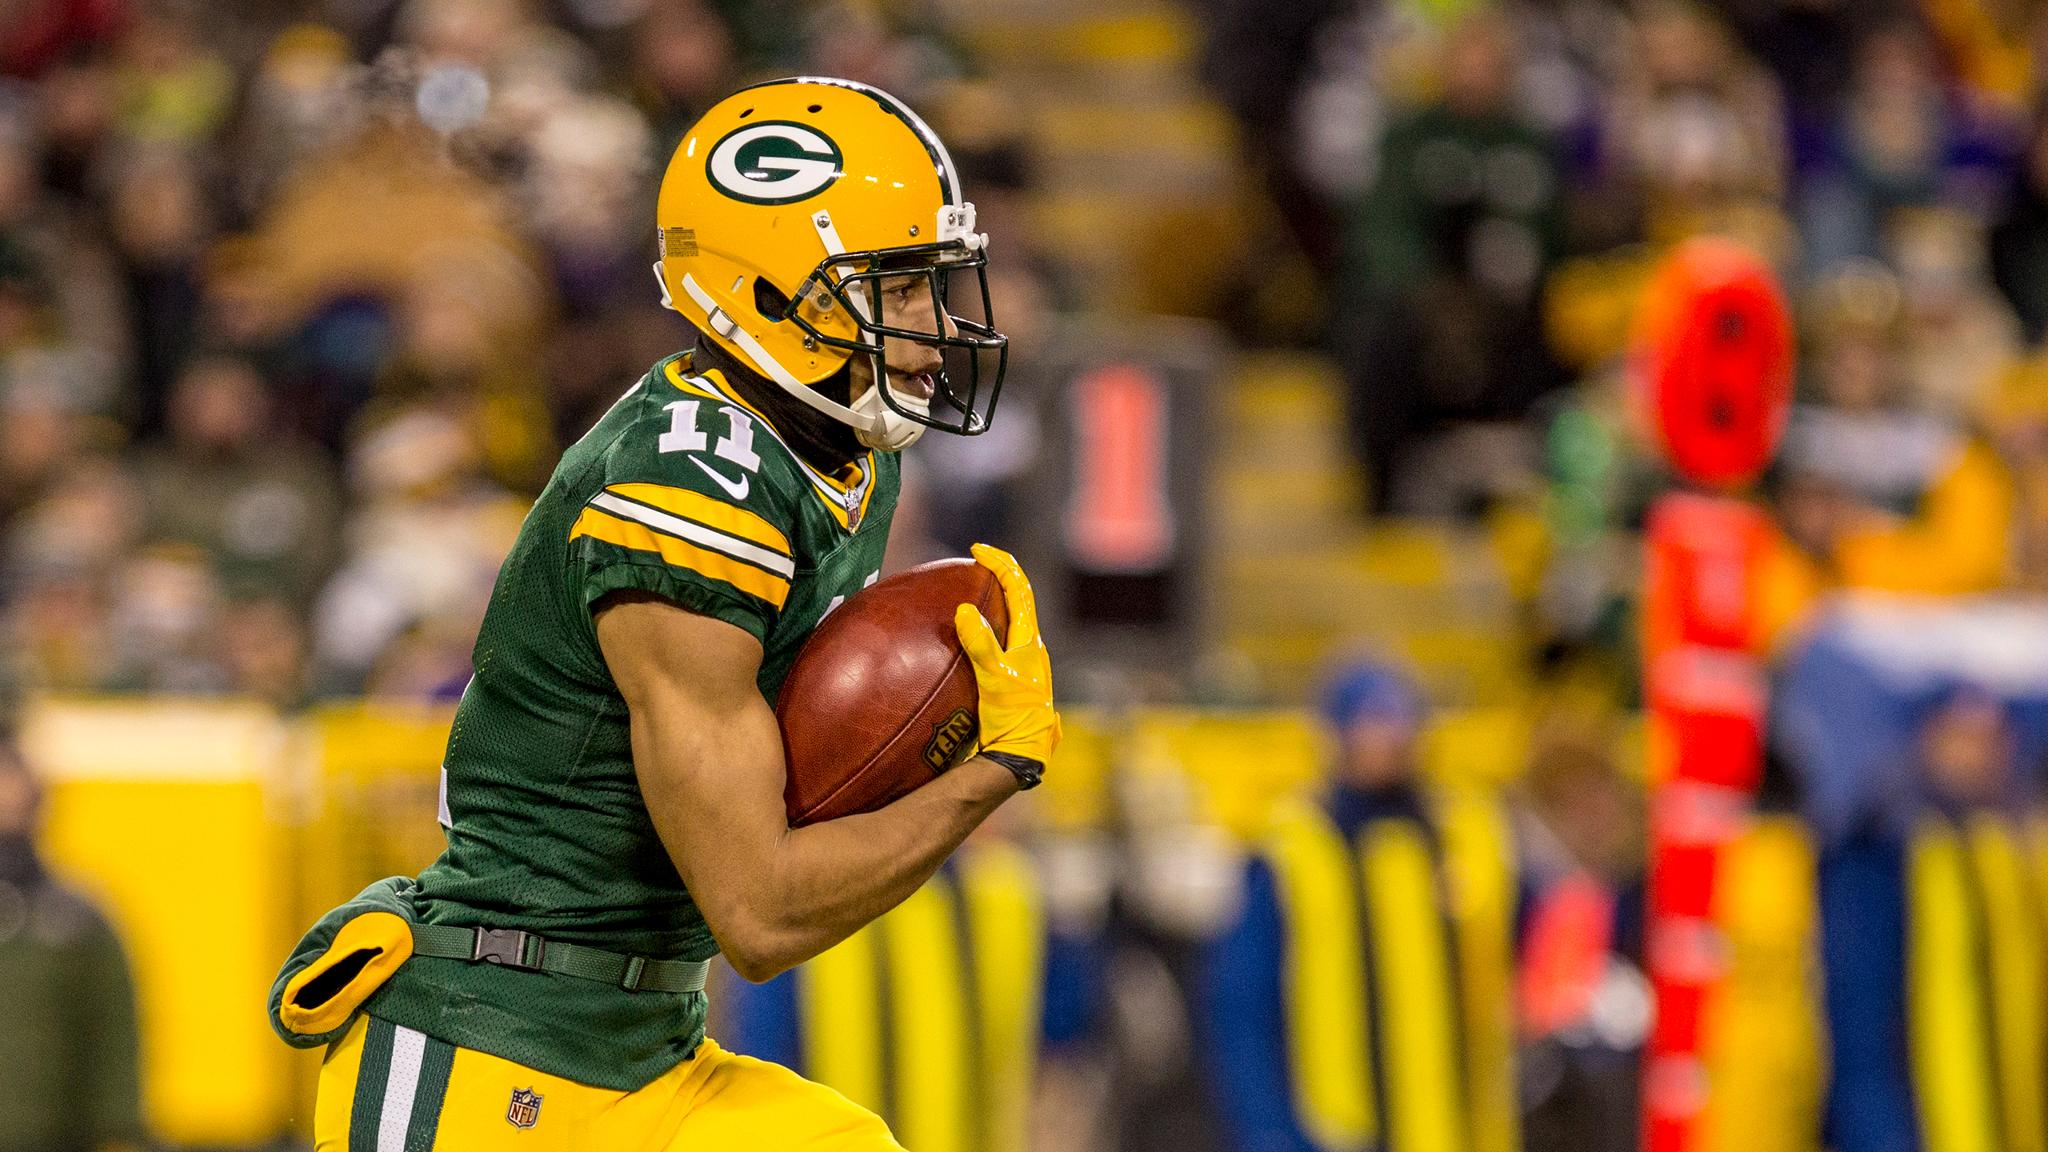 #Packers activate WR Trevor Davis from injured reserve   ��: https://t.co/KJYSCc3L0t https://t.co/XkTDd51sZQ